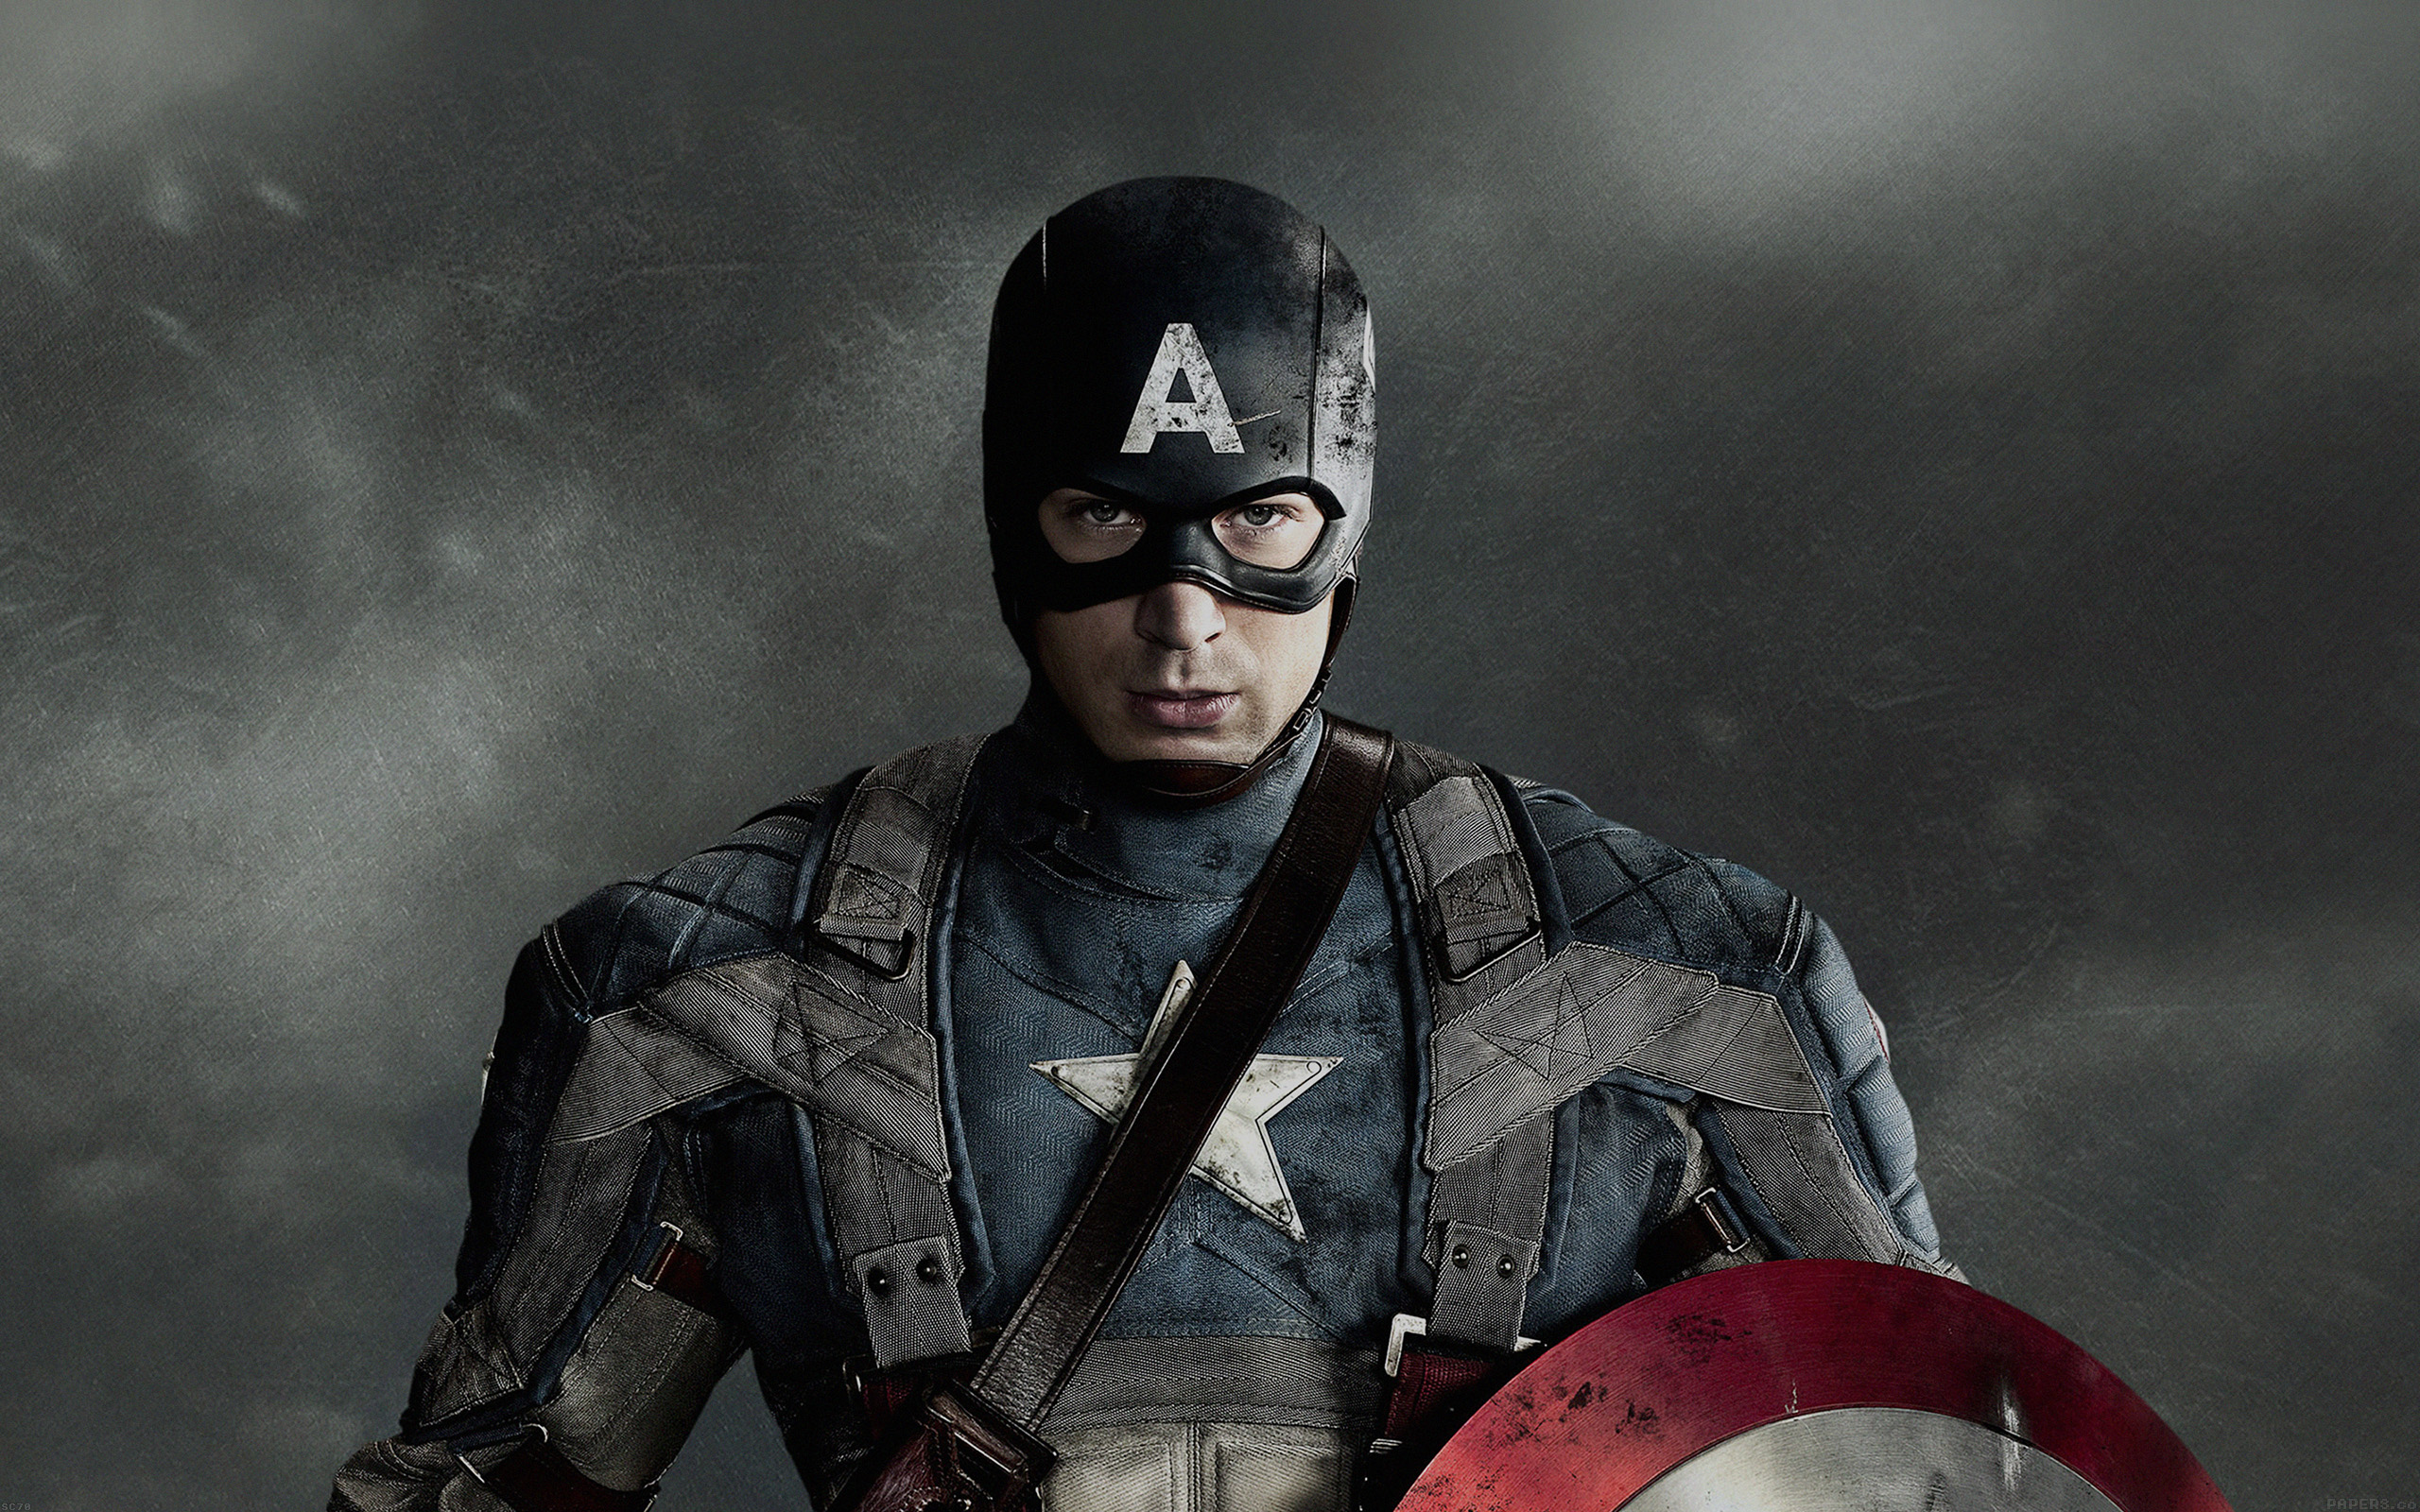 captain america as a rhetorical superhero essay Captain america and the struggle of the superhero: critical essays, edited by  robert g weiner foreword by john shelton lawrence, afterward.